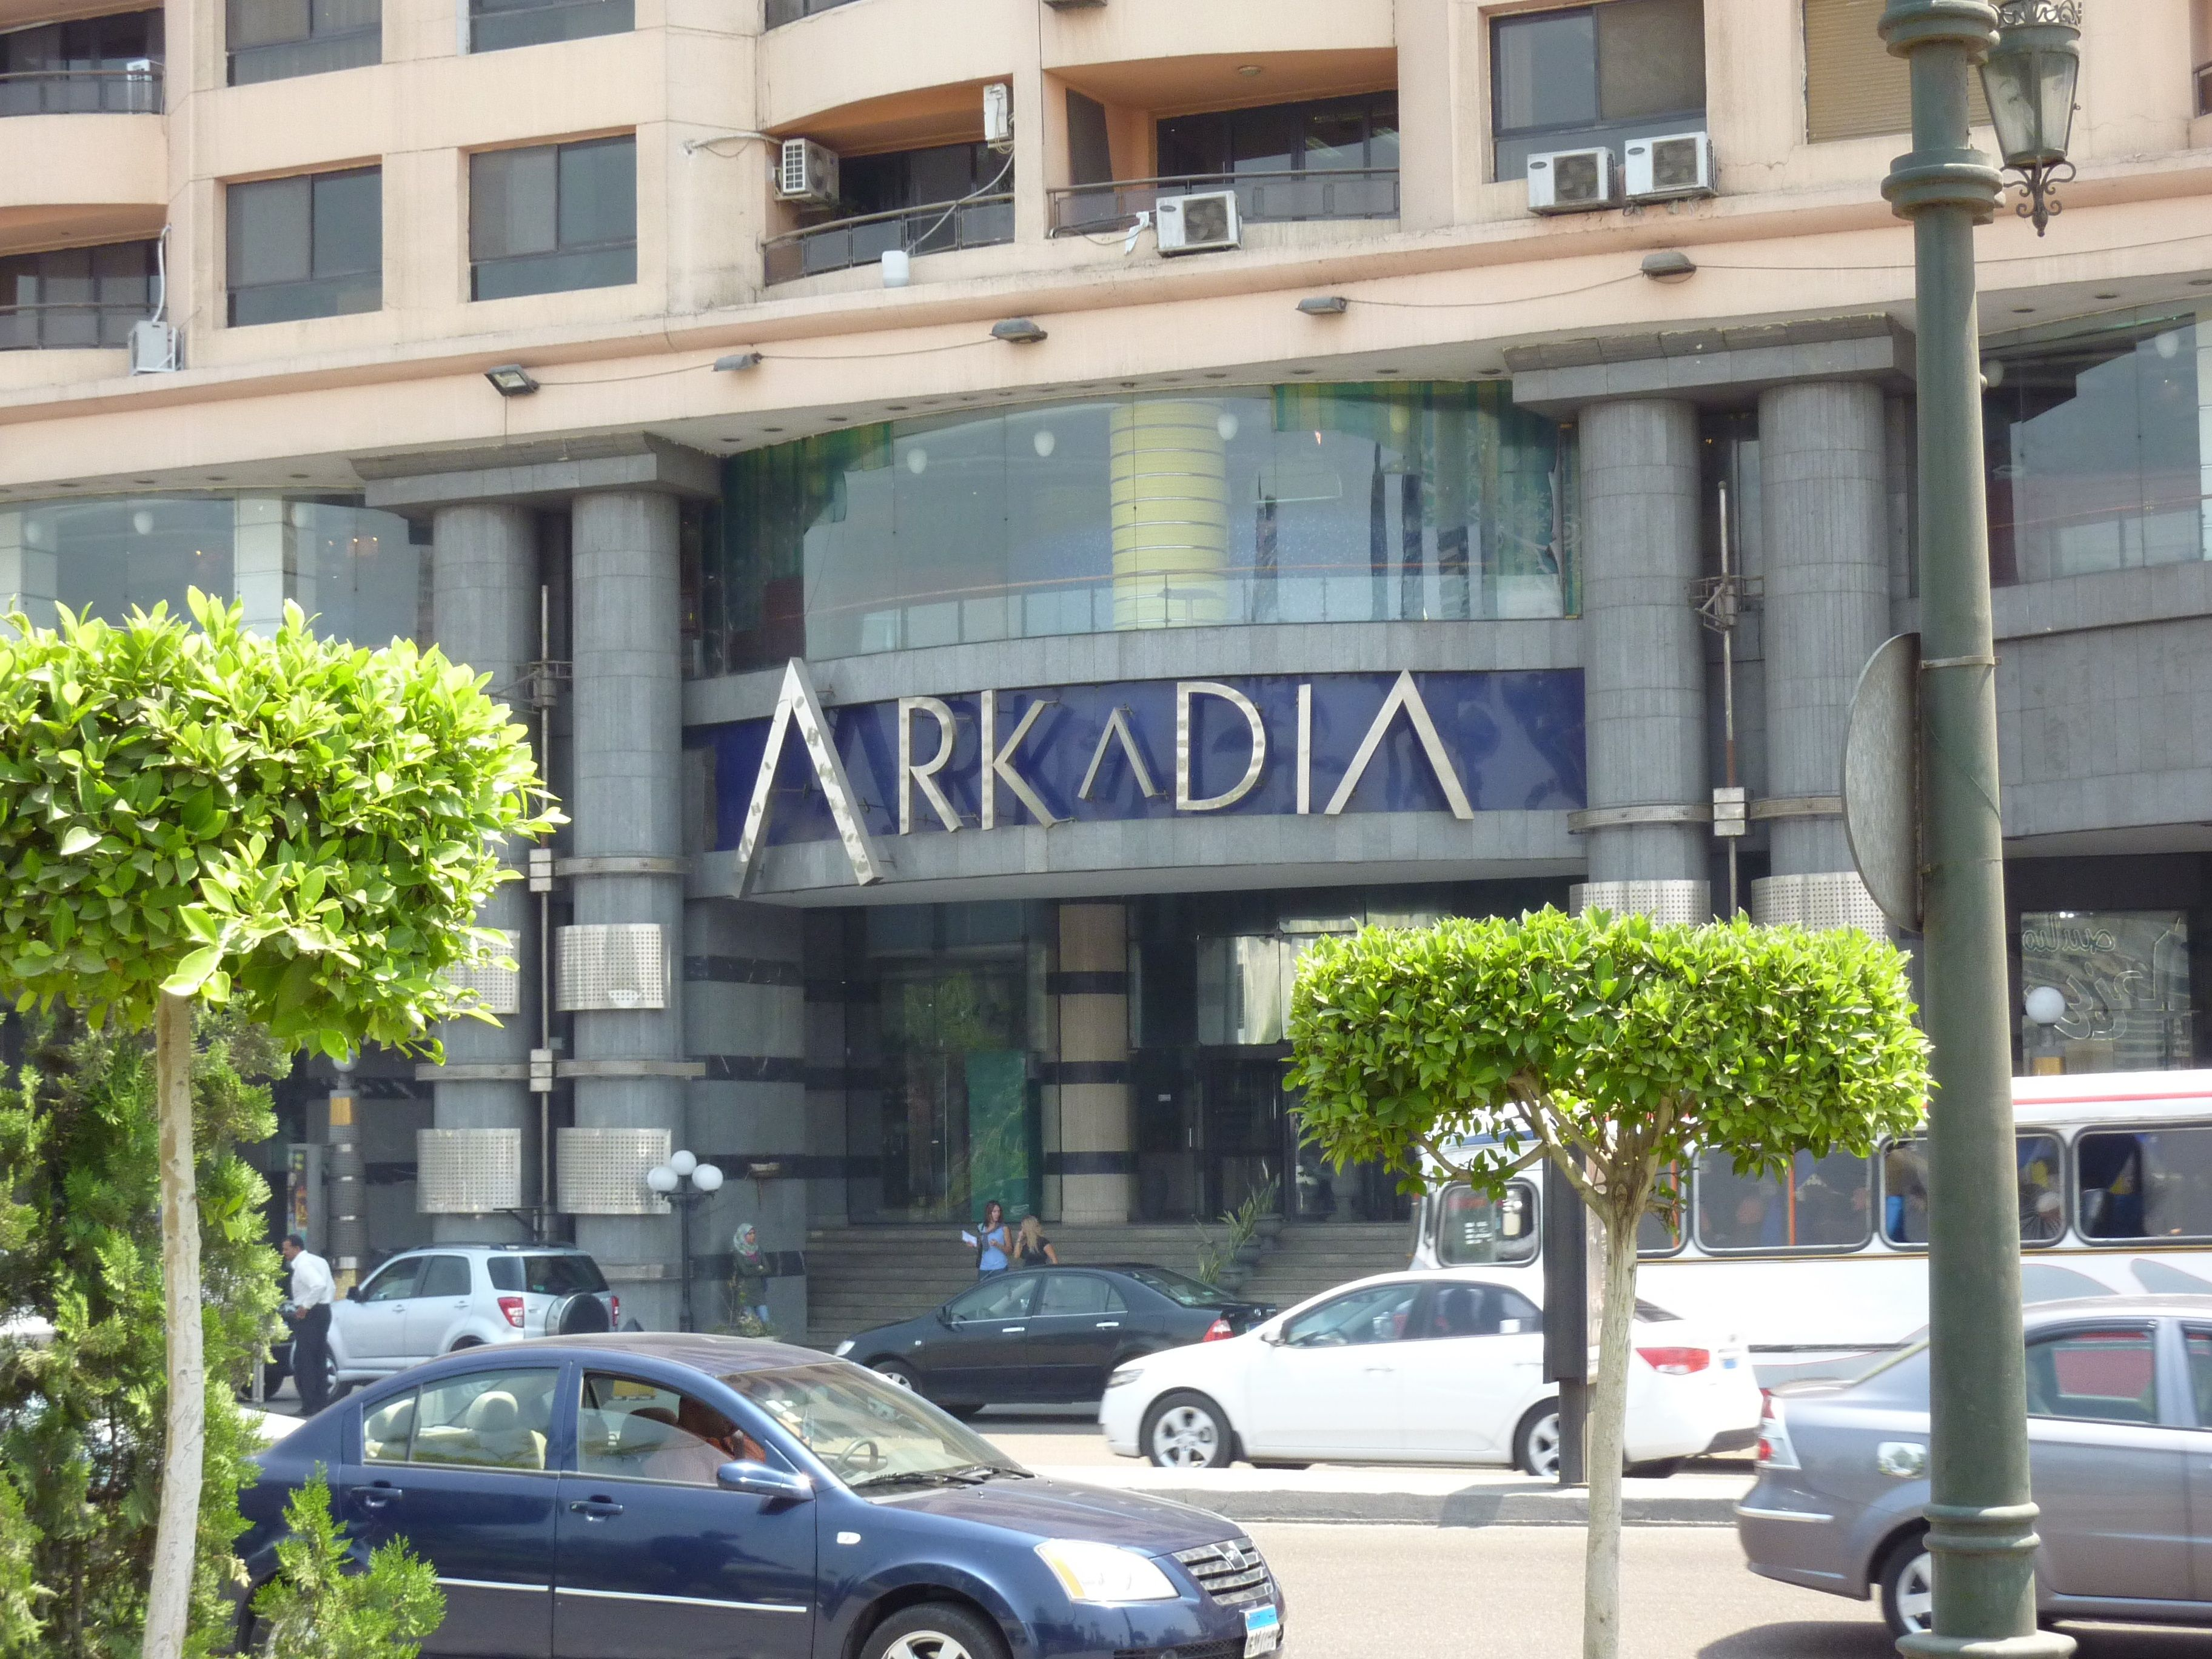 Shopping Arkadia Mall The Biggest Mall In Central Cairo With Bars And A Top Floor Arcade Here Youll Find All The Usual Internatio Cairo Weekend Deals Egypt